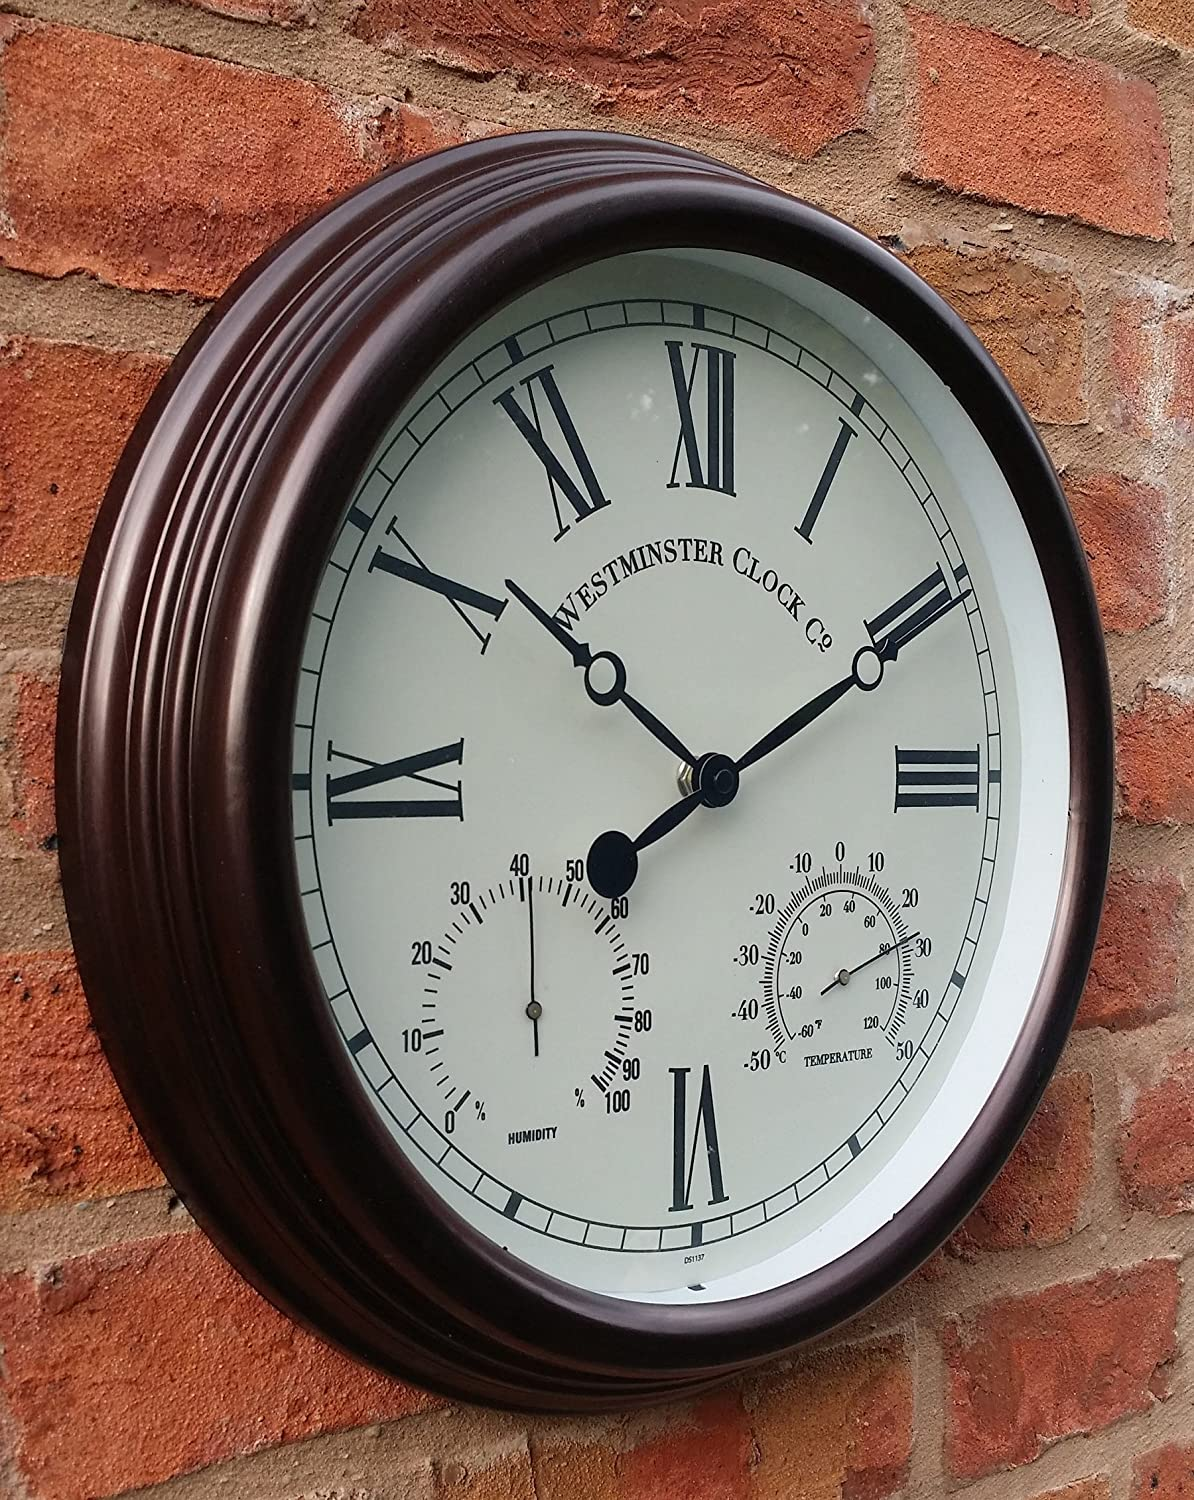 garden clock. Outdoor Garden Wall Clock With Temperature And Humidity Roman Numerals - 38cm: Amazon.co.uk: Kitchen \u0026 Home A